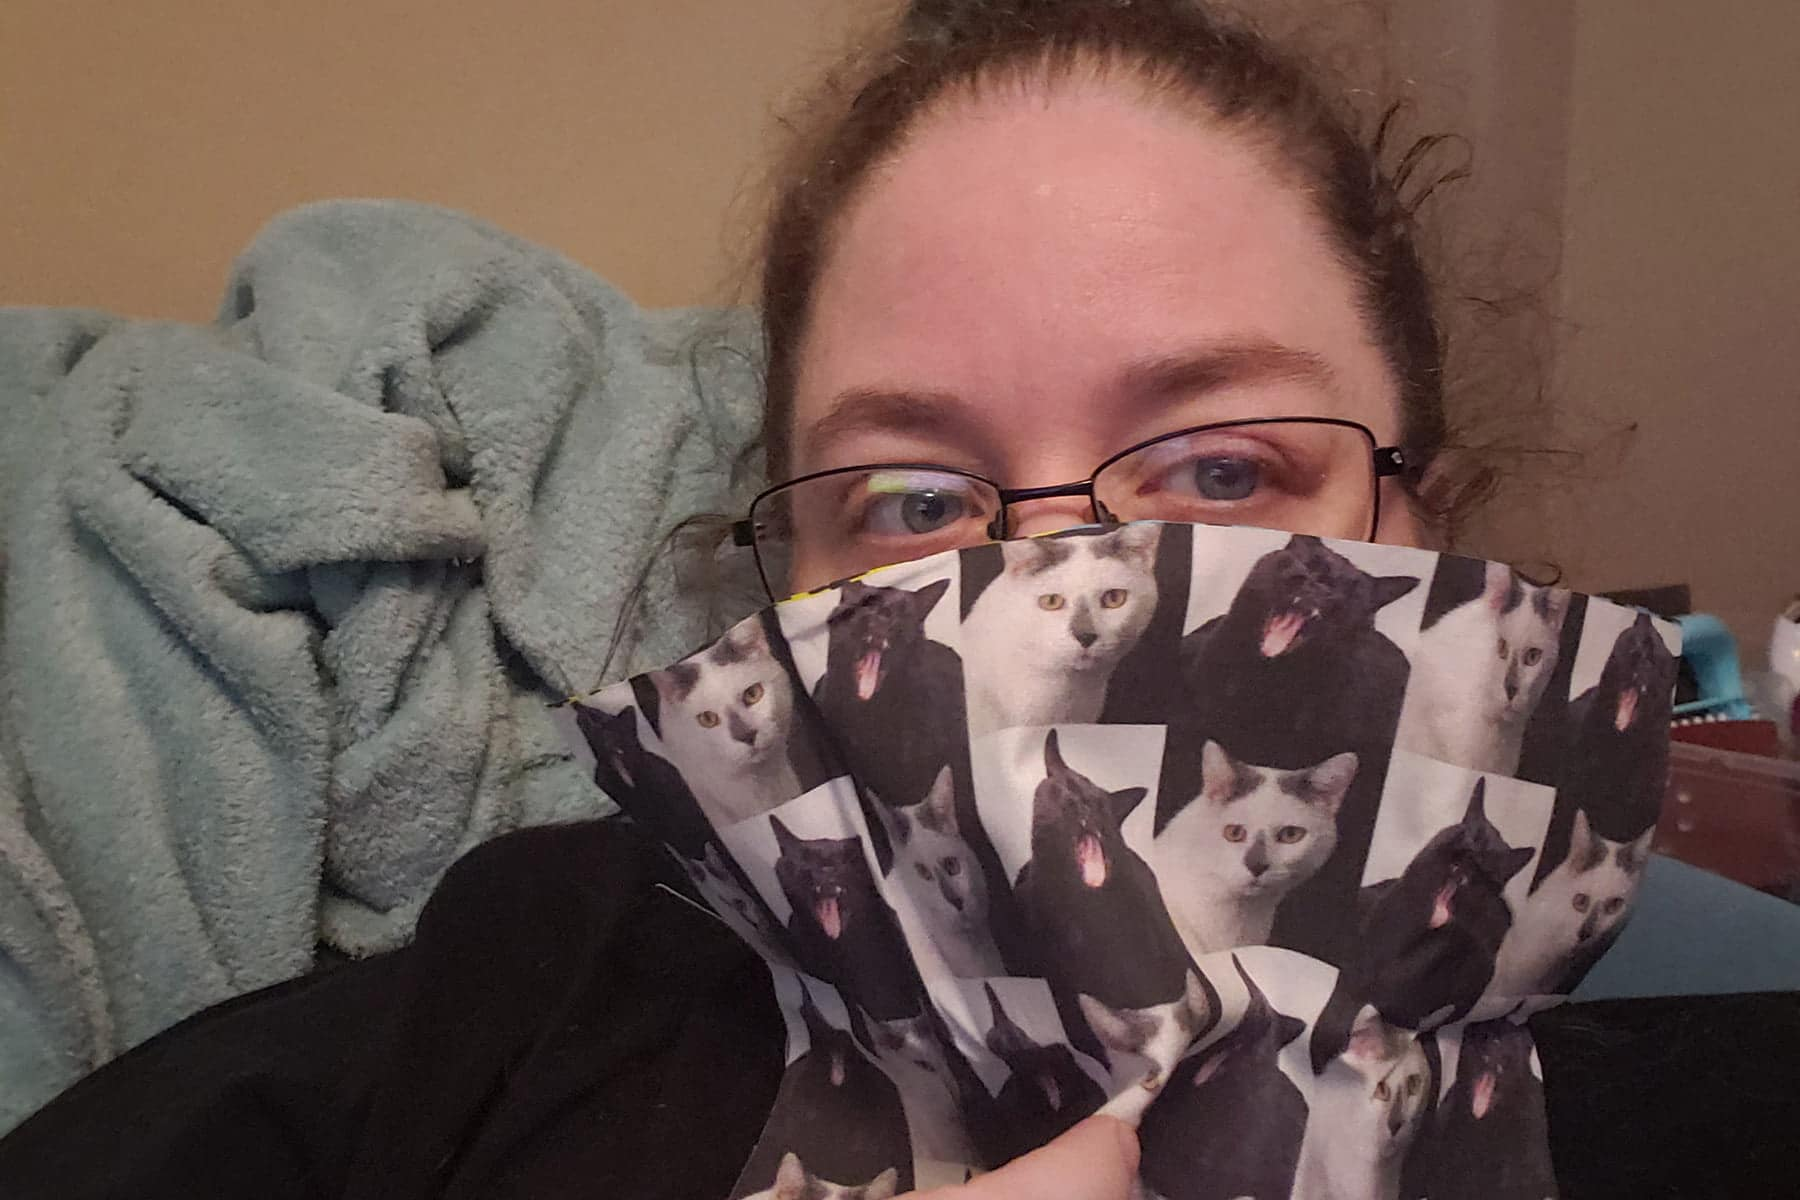 Selfie of a woman holding black and white cat print fabric covering her lower face, as a stand in for a mask.